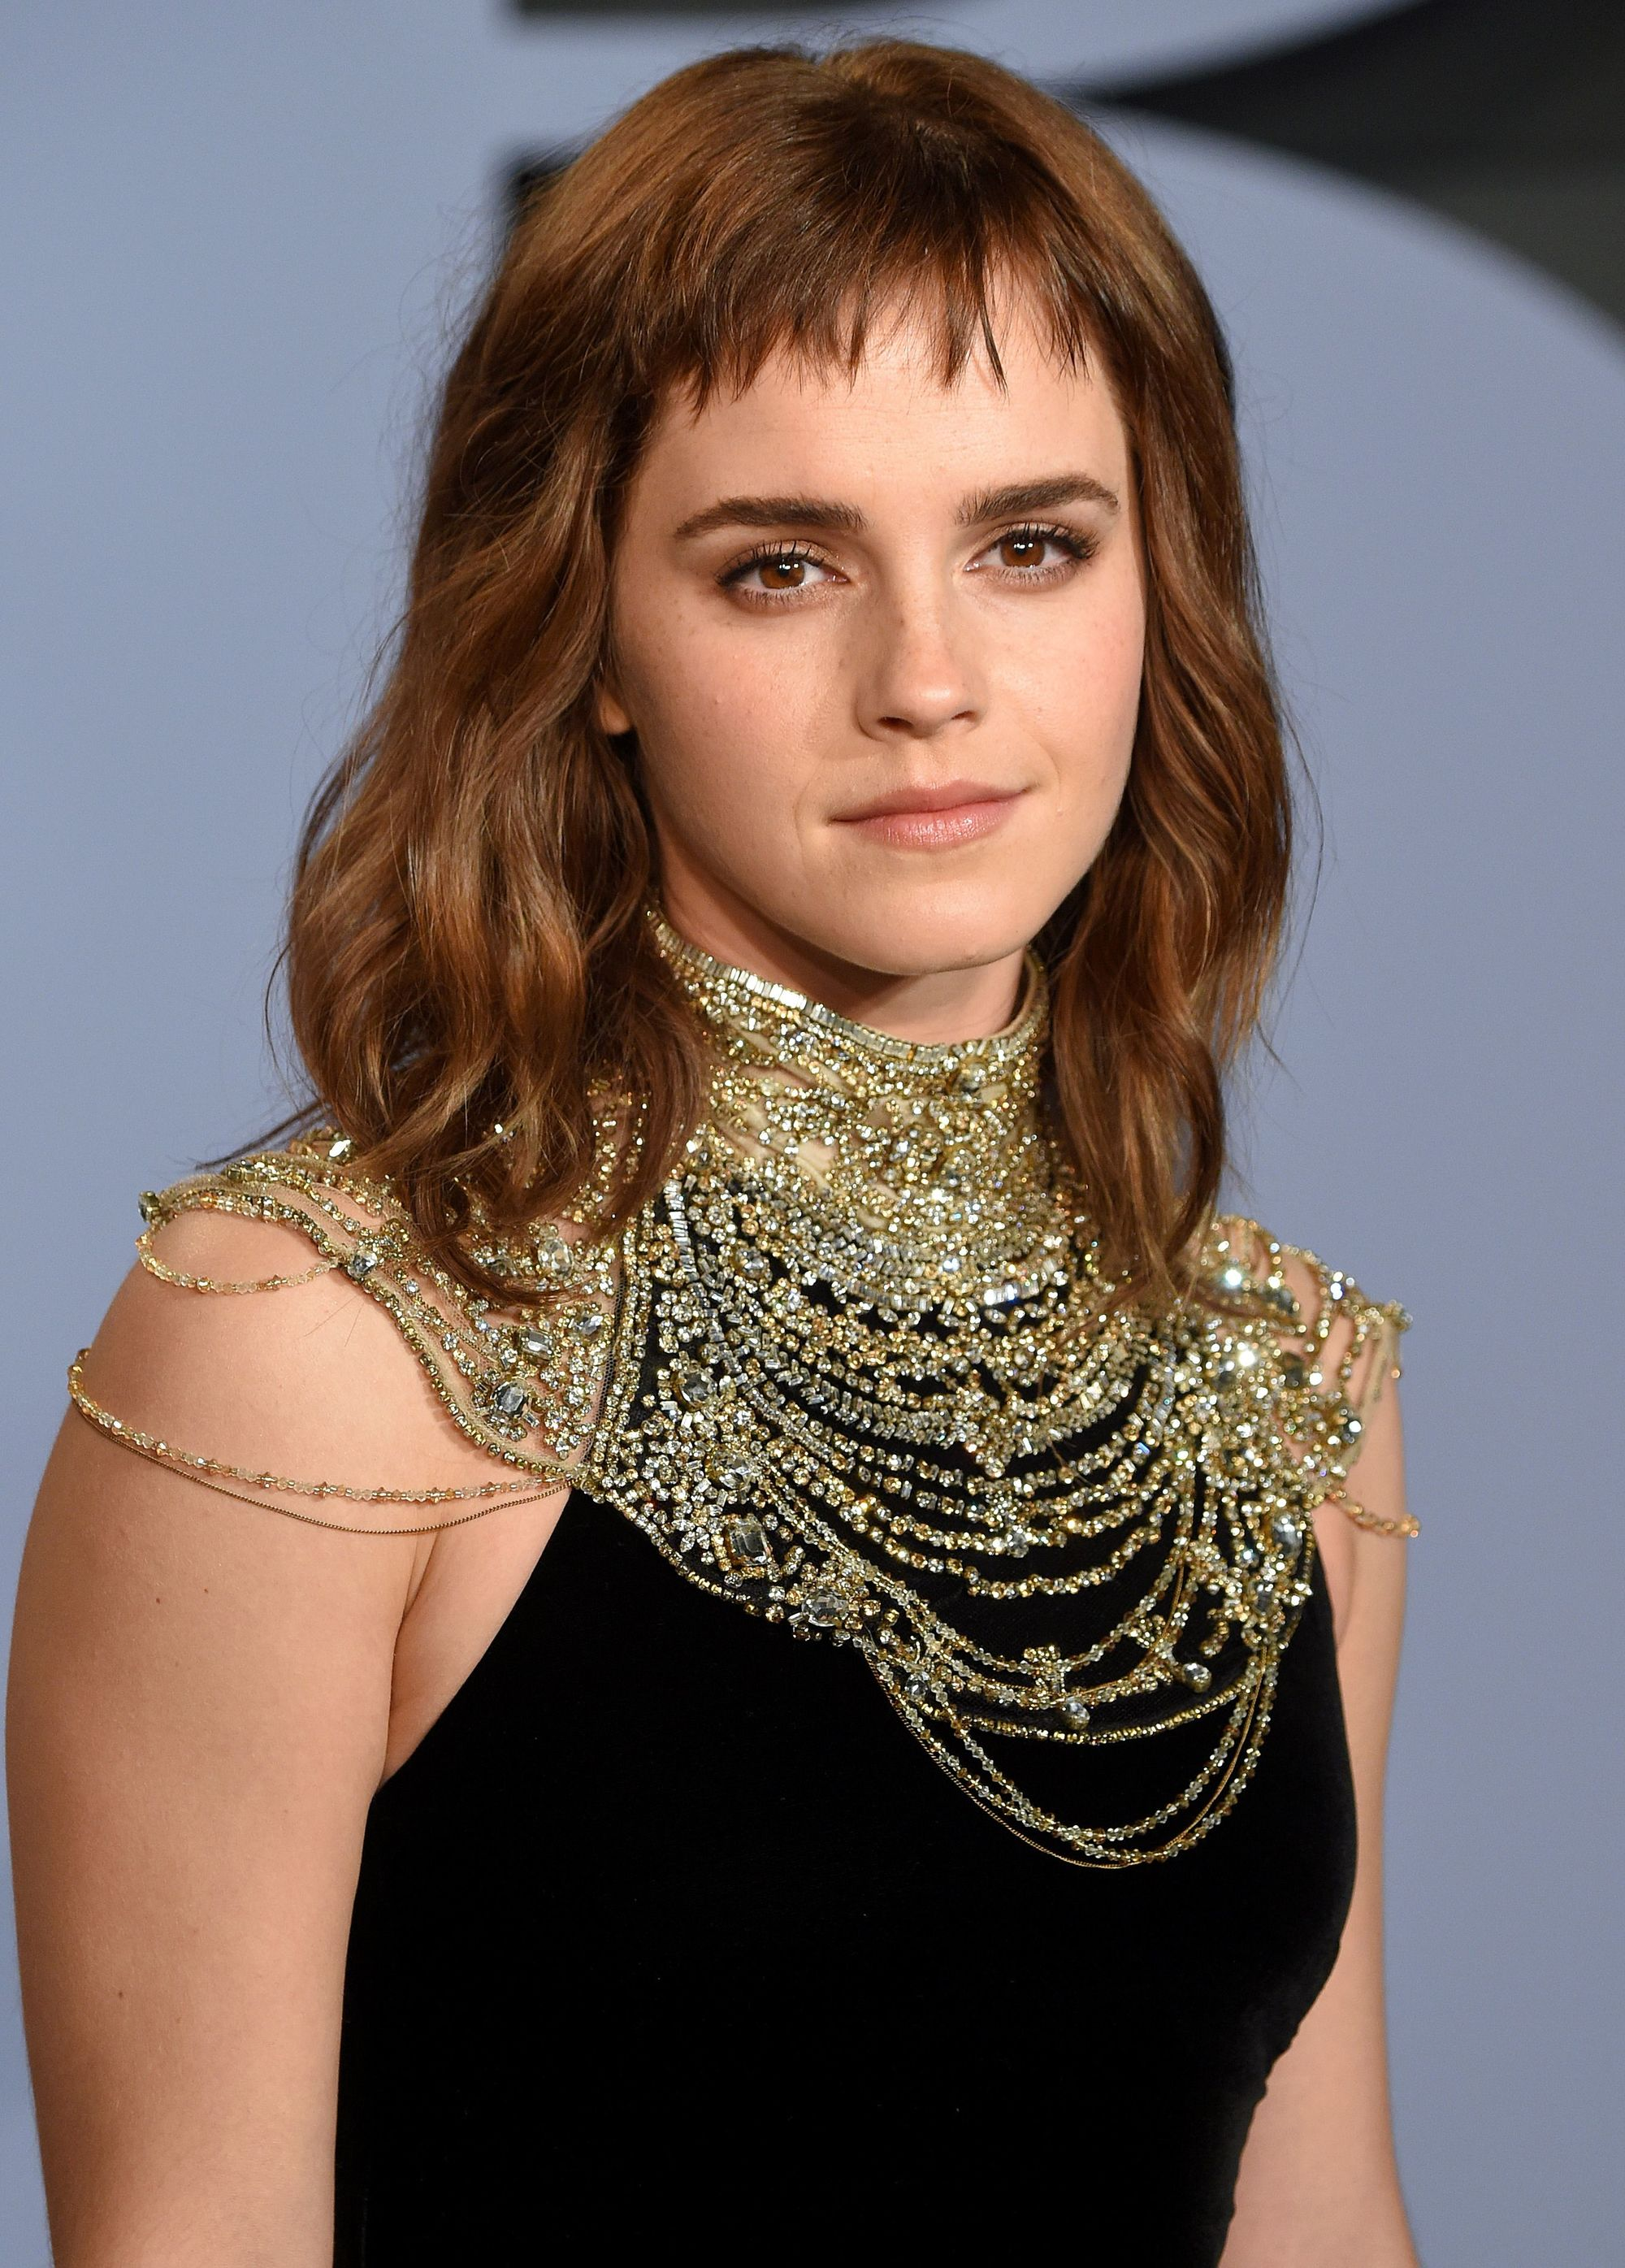 Short bangs: Emma Watson with shoulder length wavy brown hair with short micro fringe wearing a black dress with chain neckline.